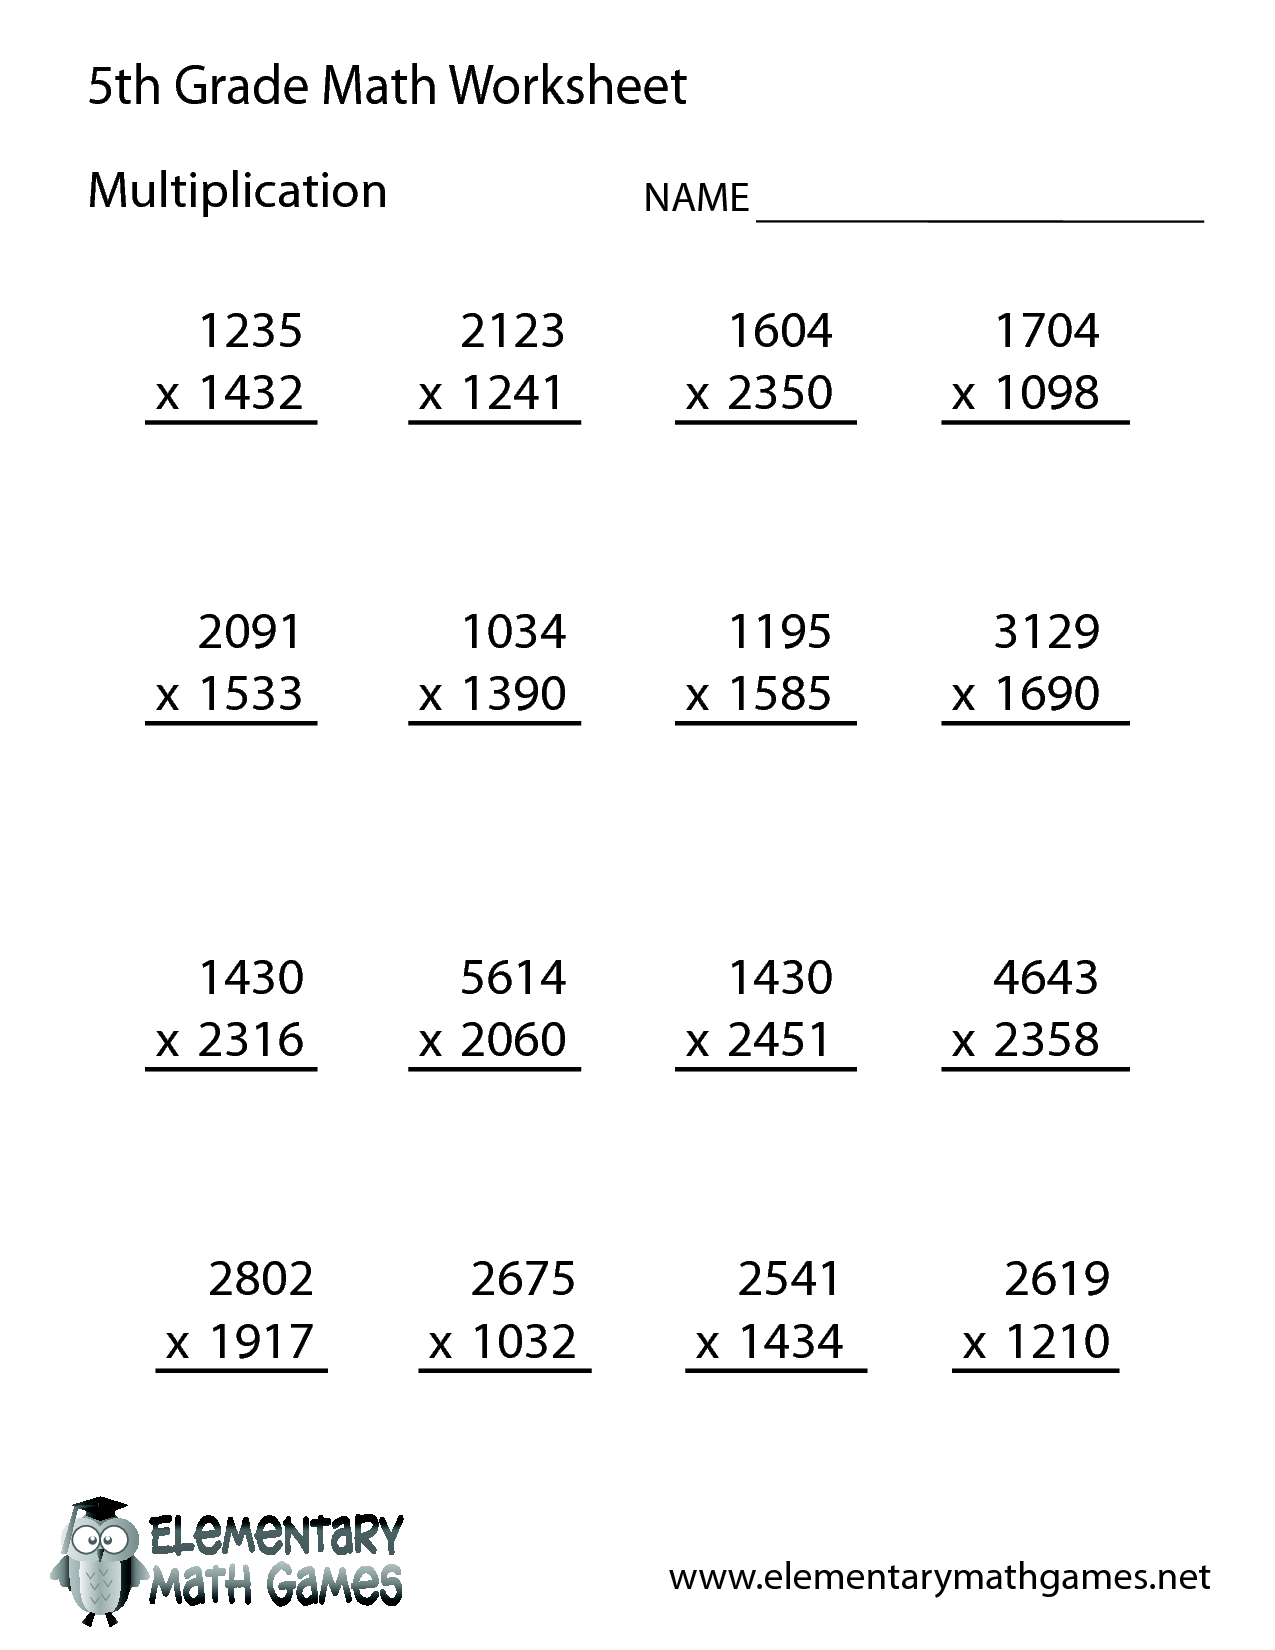 Worksheet 612792 Multiplication Worksheets Year 5 – Multiplication Worksheets Year 6